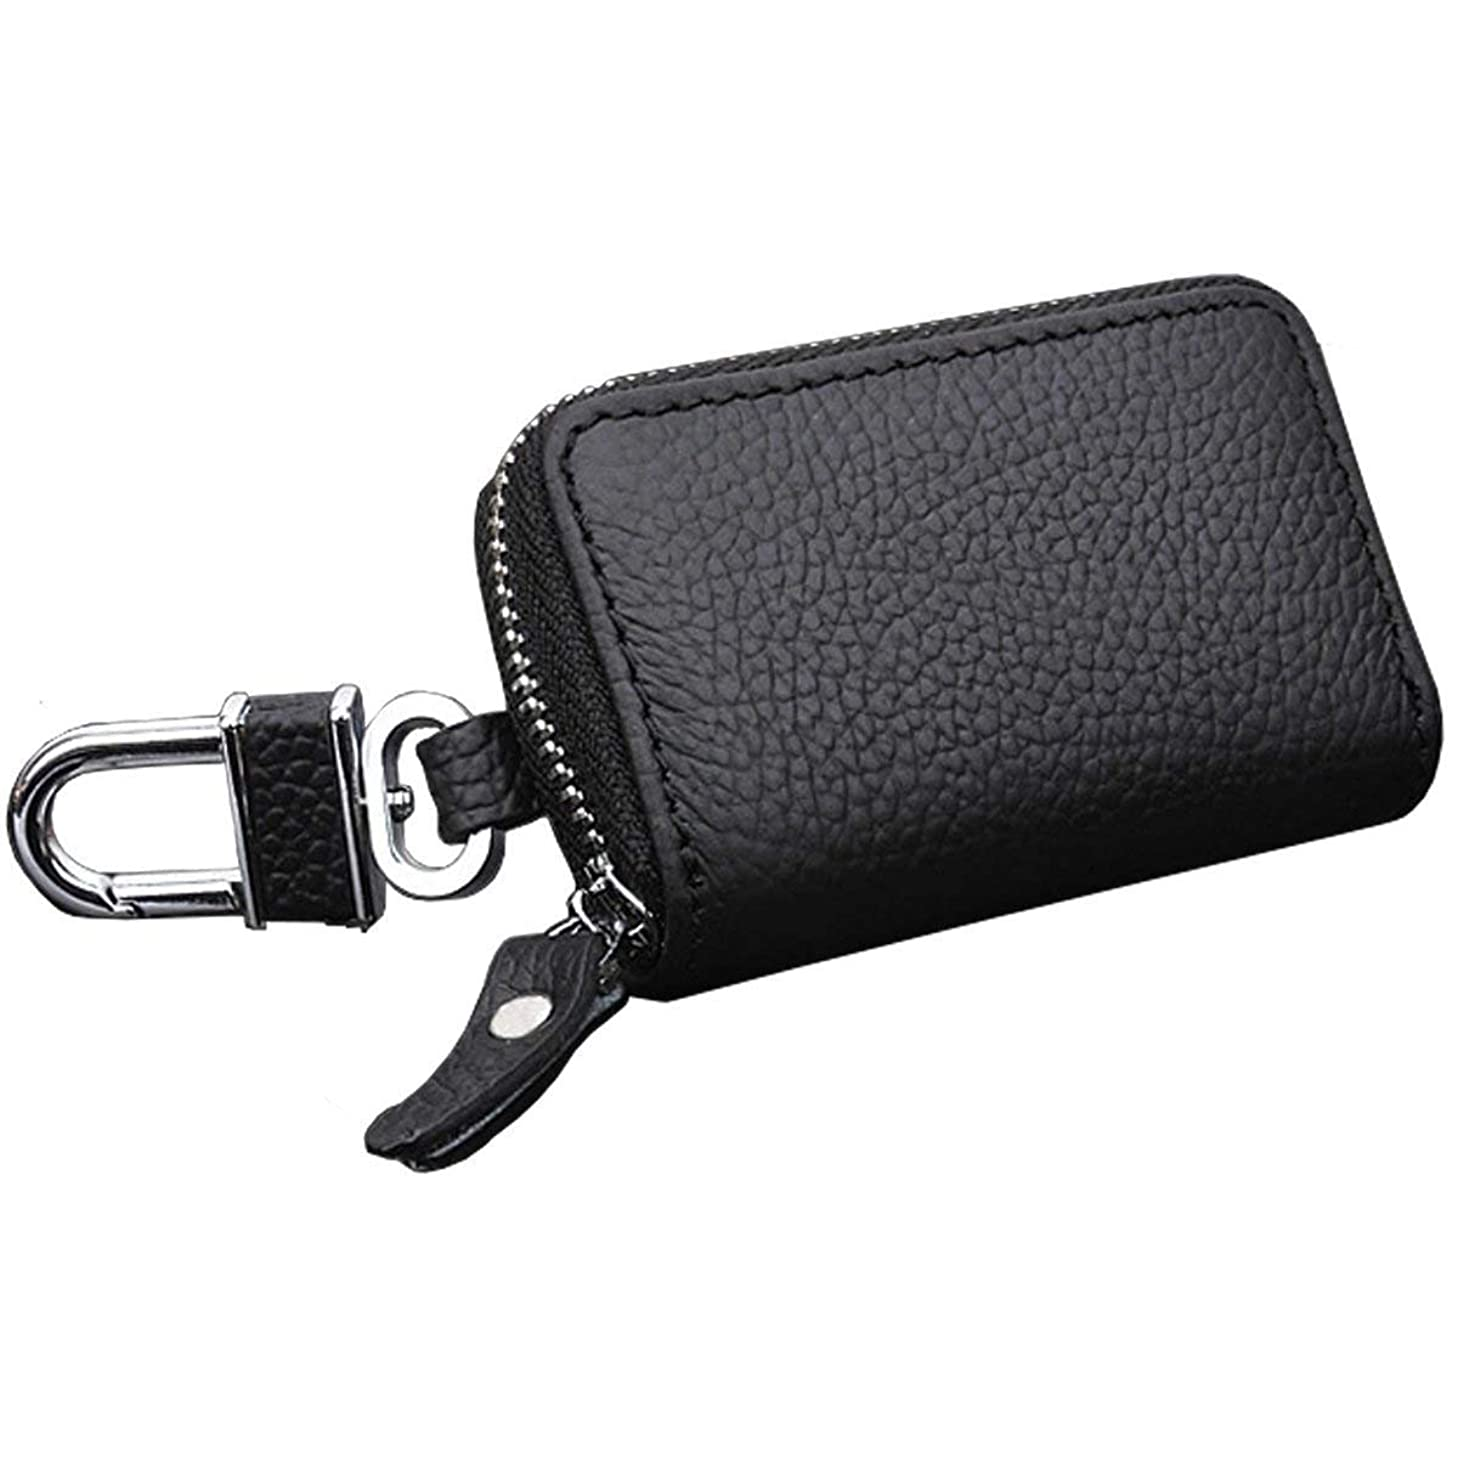 REEGE Car Key Chain Premium Leather Car Key Holder with Zipper for Key FOB(Black)